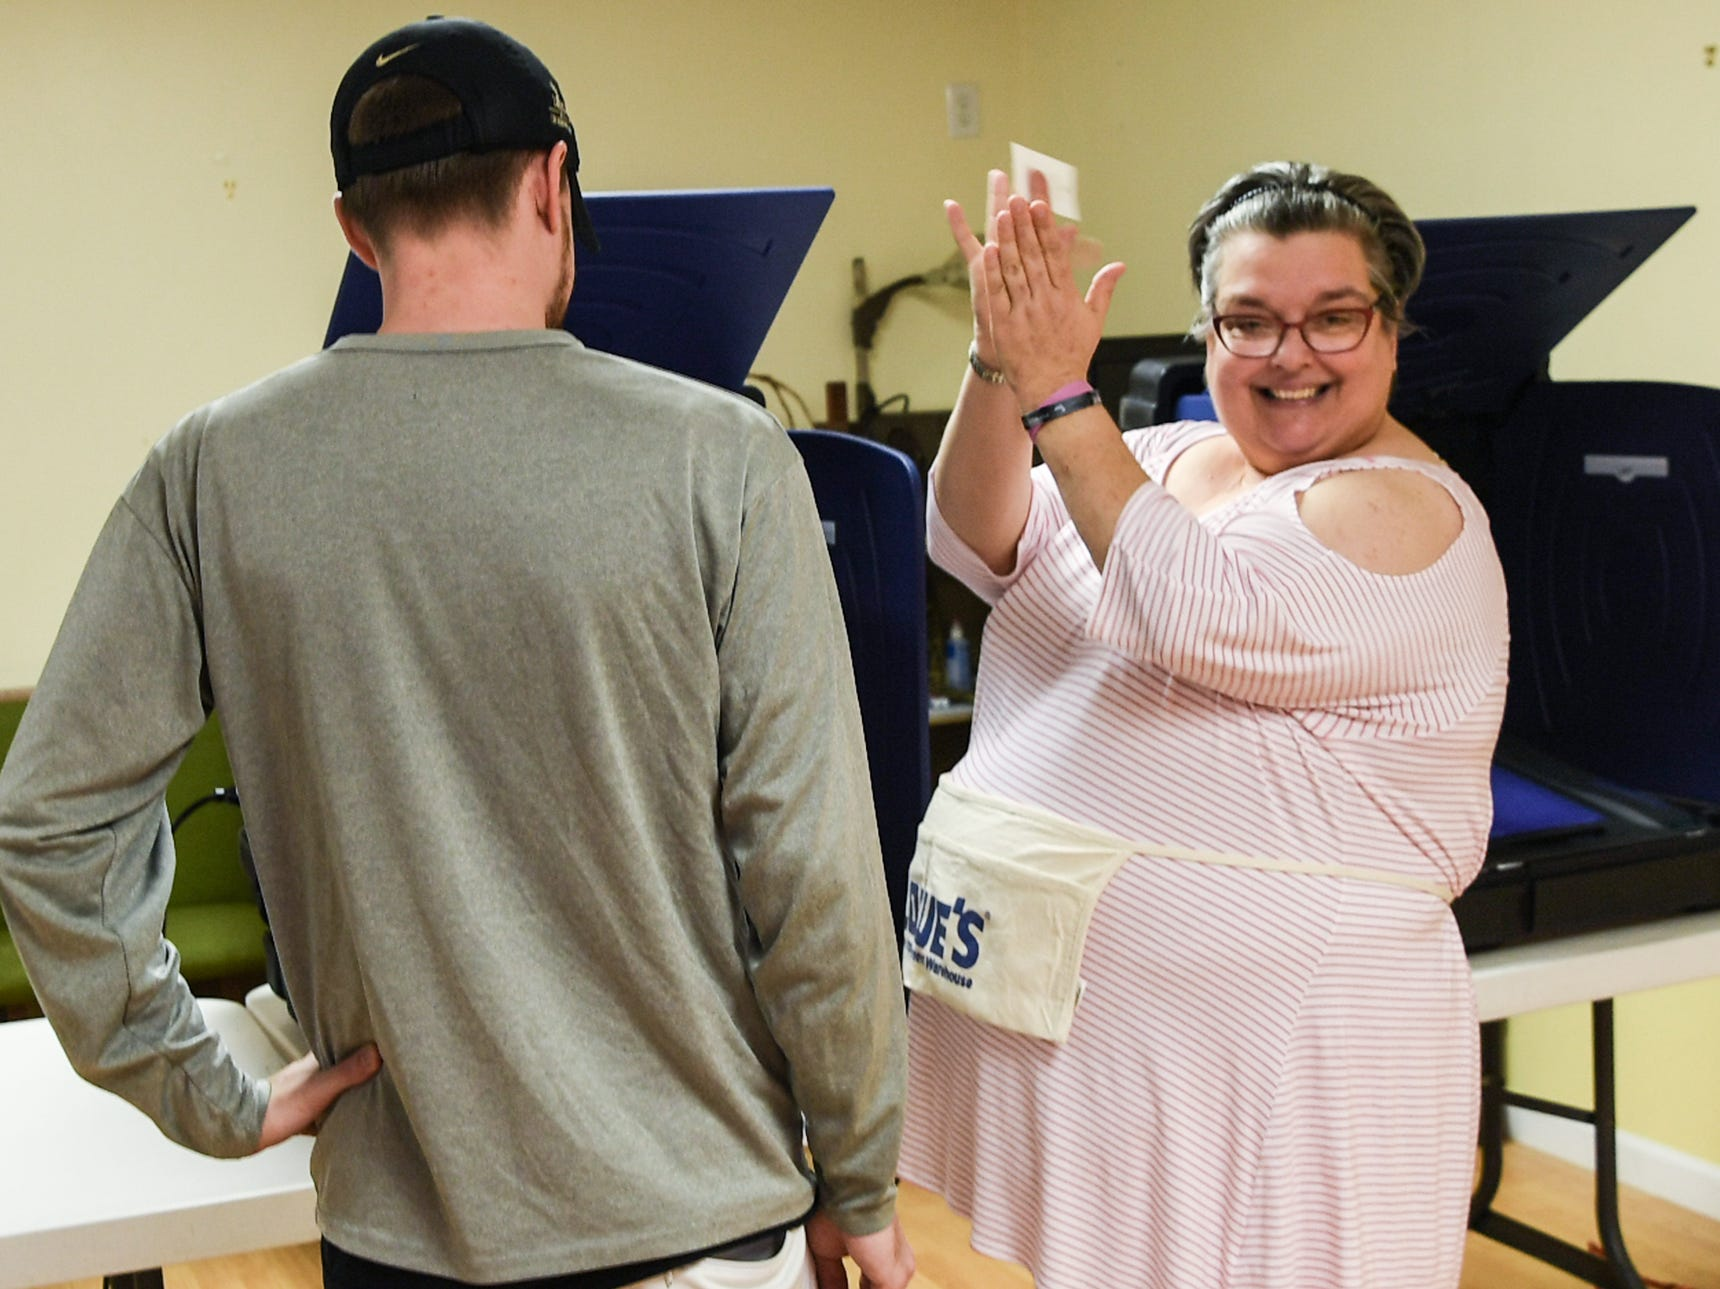 Pam Stansell, poll manager for Anderson Precinct 6/1, cheers for first time voter Ryan Howard at Trinity United Methodist Church in Anderson on Tuesday, November 6, 2018. By 1 p.m., 536 voted at the precinct.